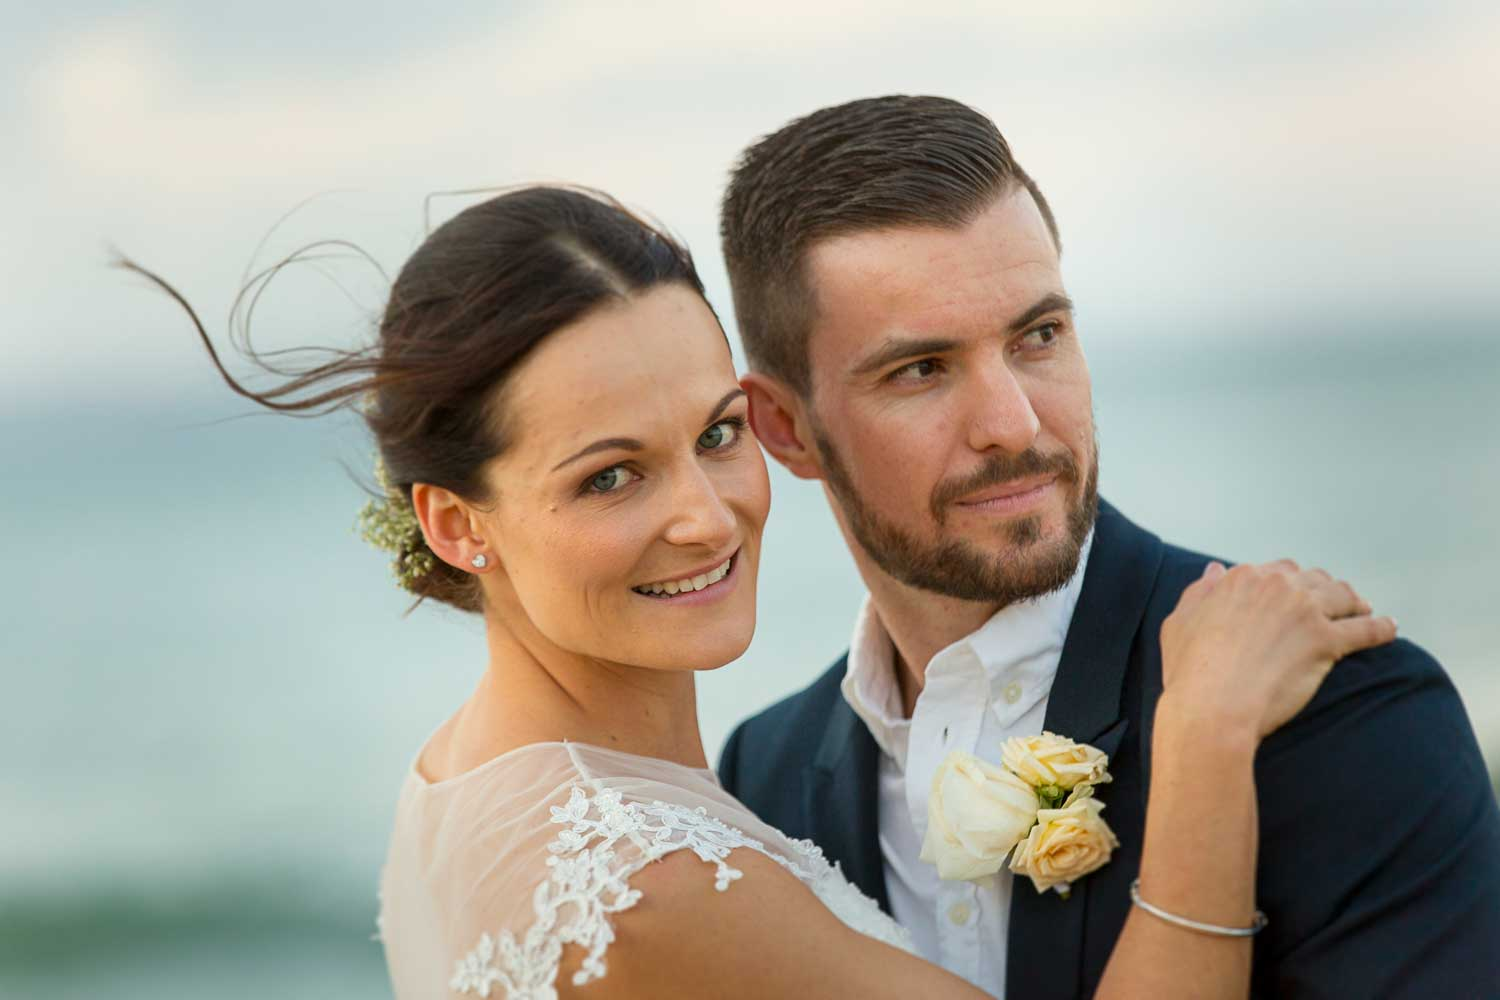 noosa weddings photographer captures a couple in love at sunset in little cove bay